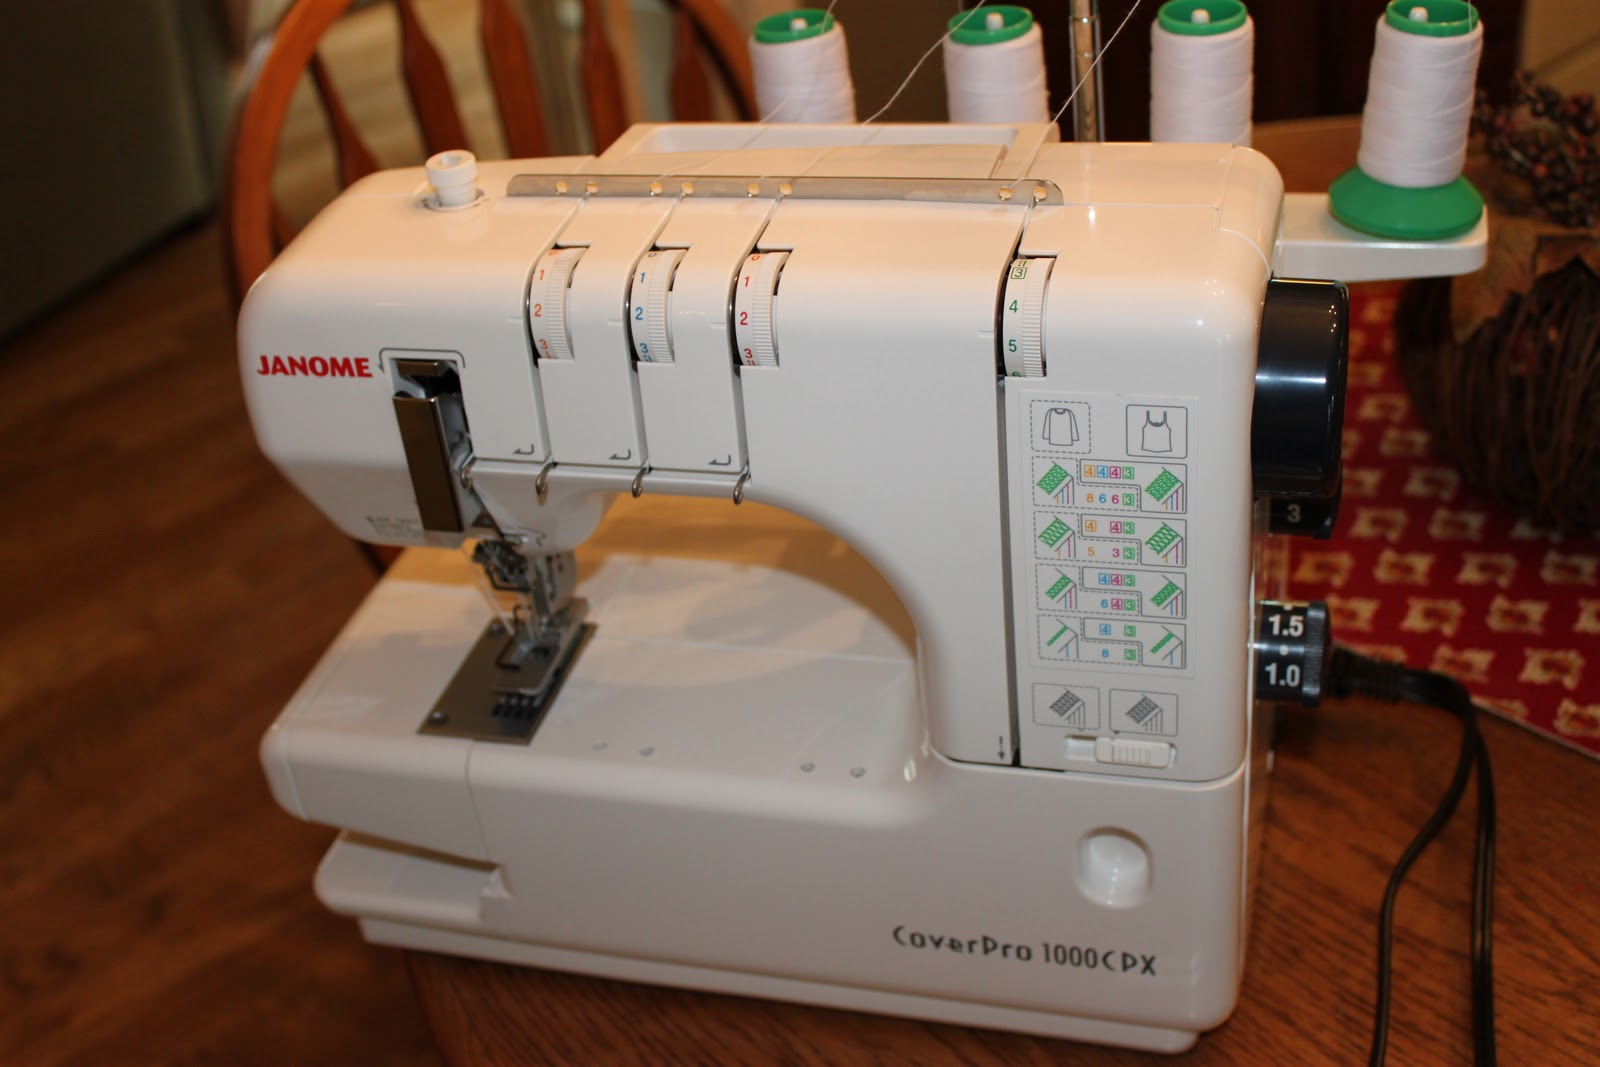 JanMade: Janome Coverpro 1000 CPX